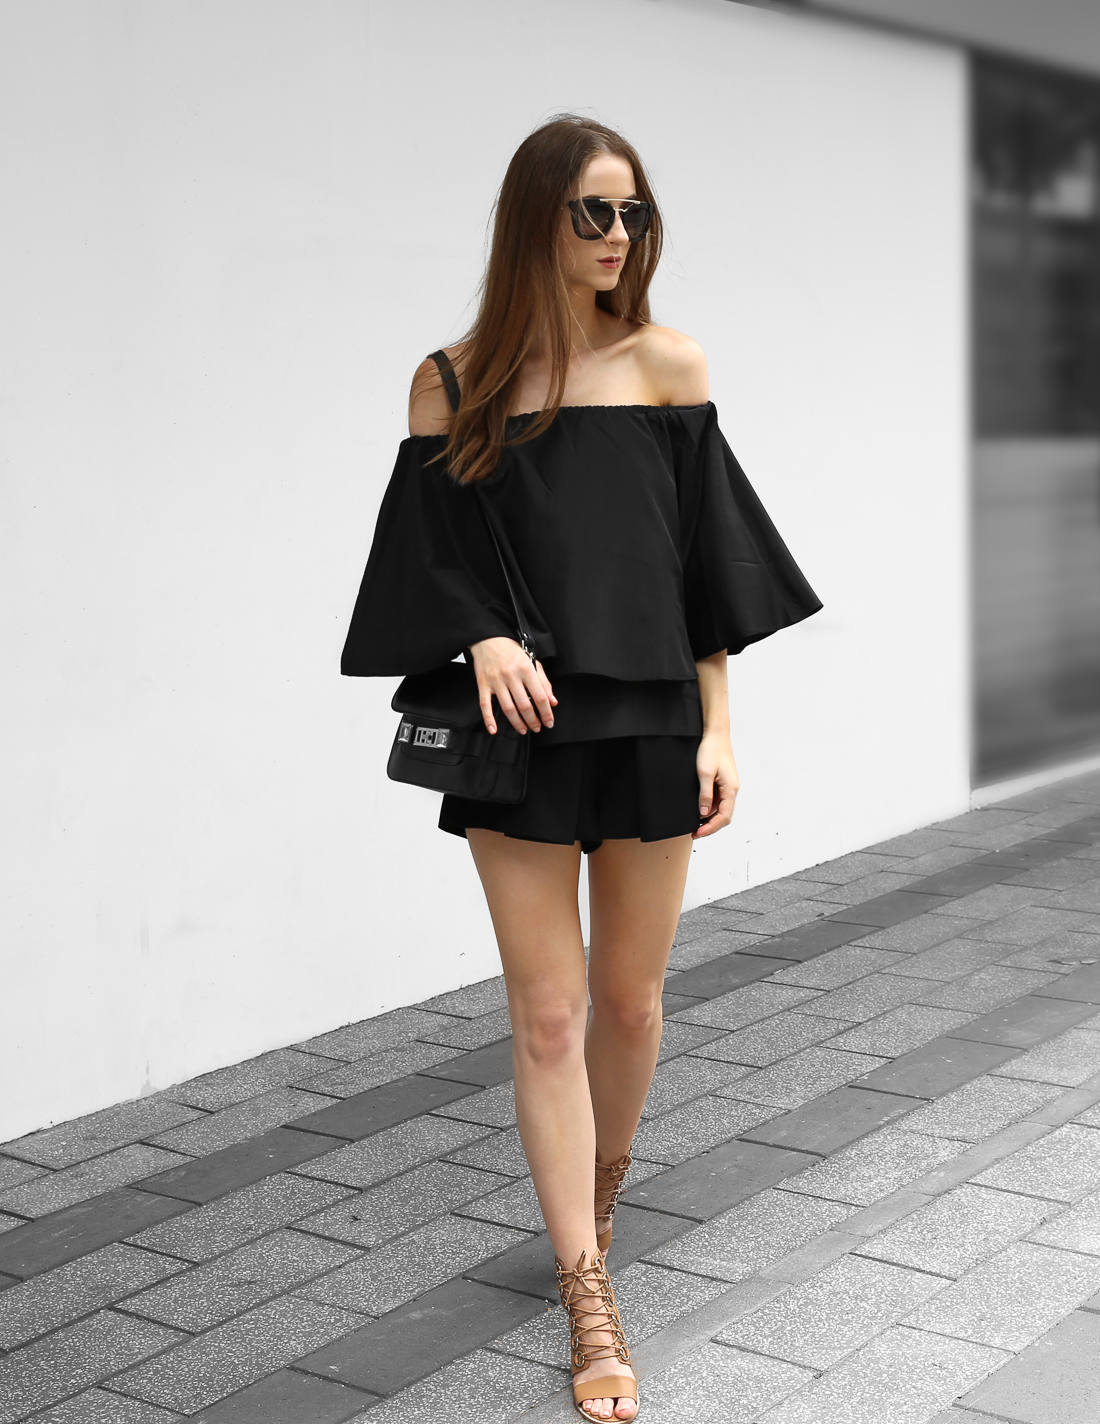 All black outfit off the shoulder top from luxe with love